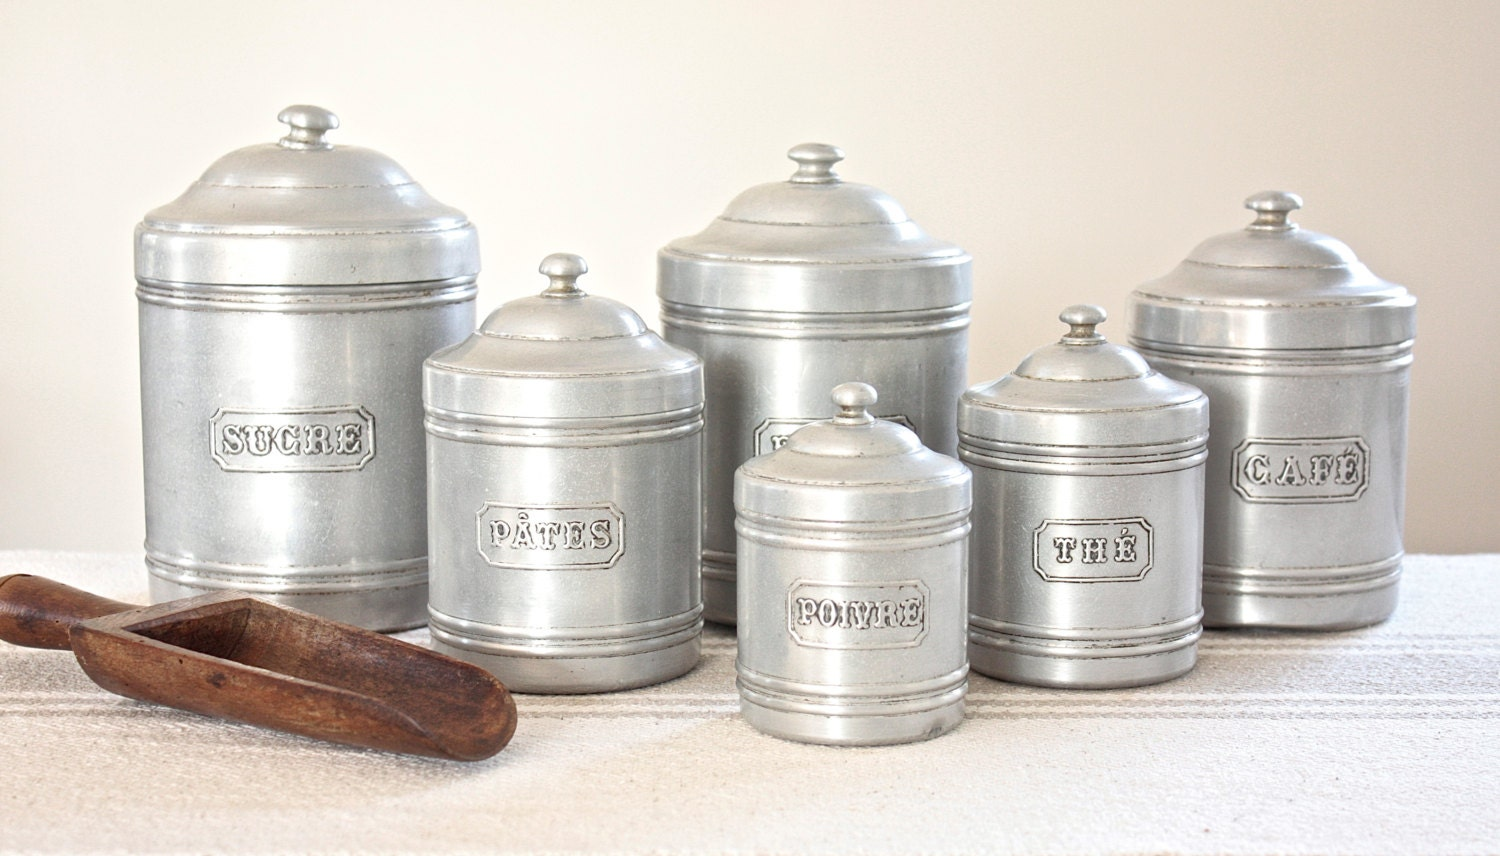 Full Set Vintage Kitchen Canisters